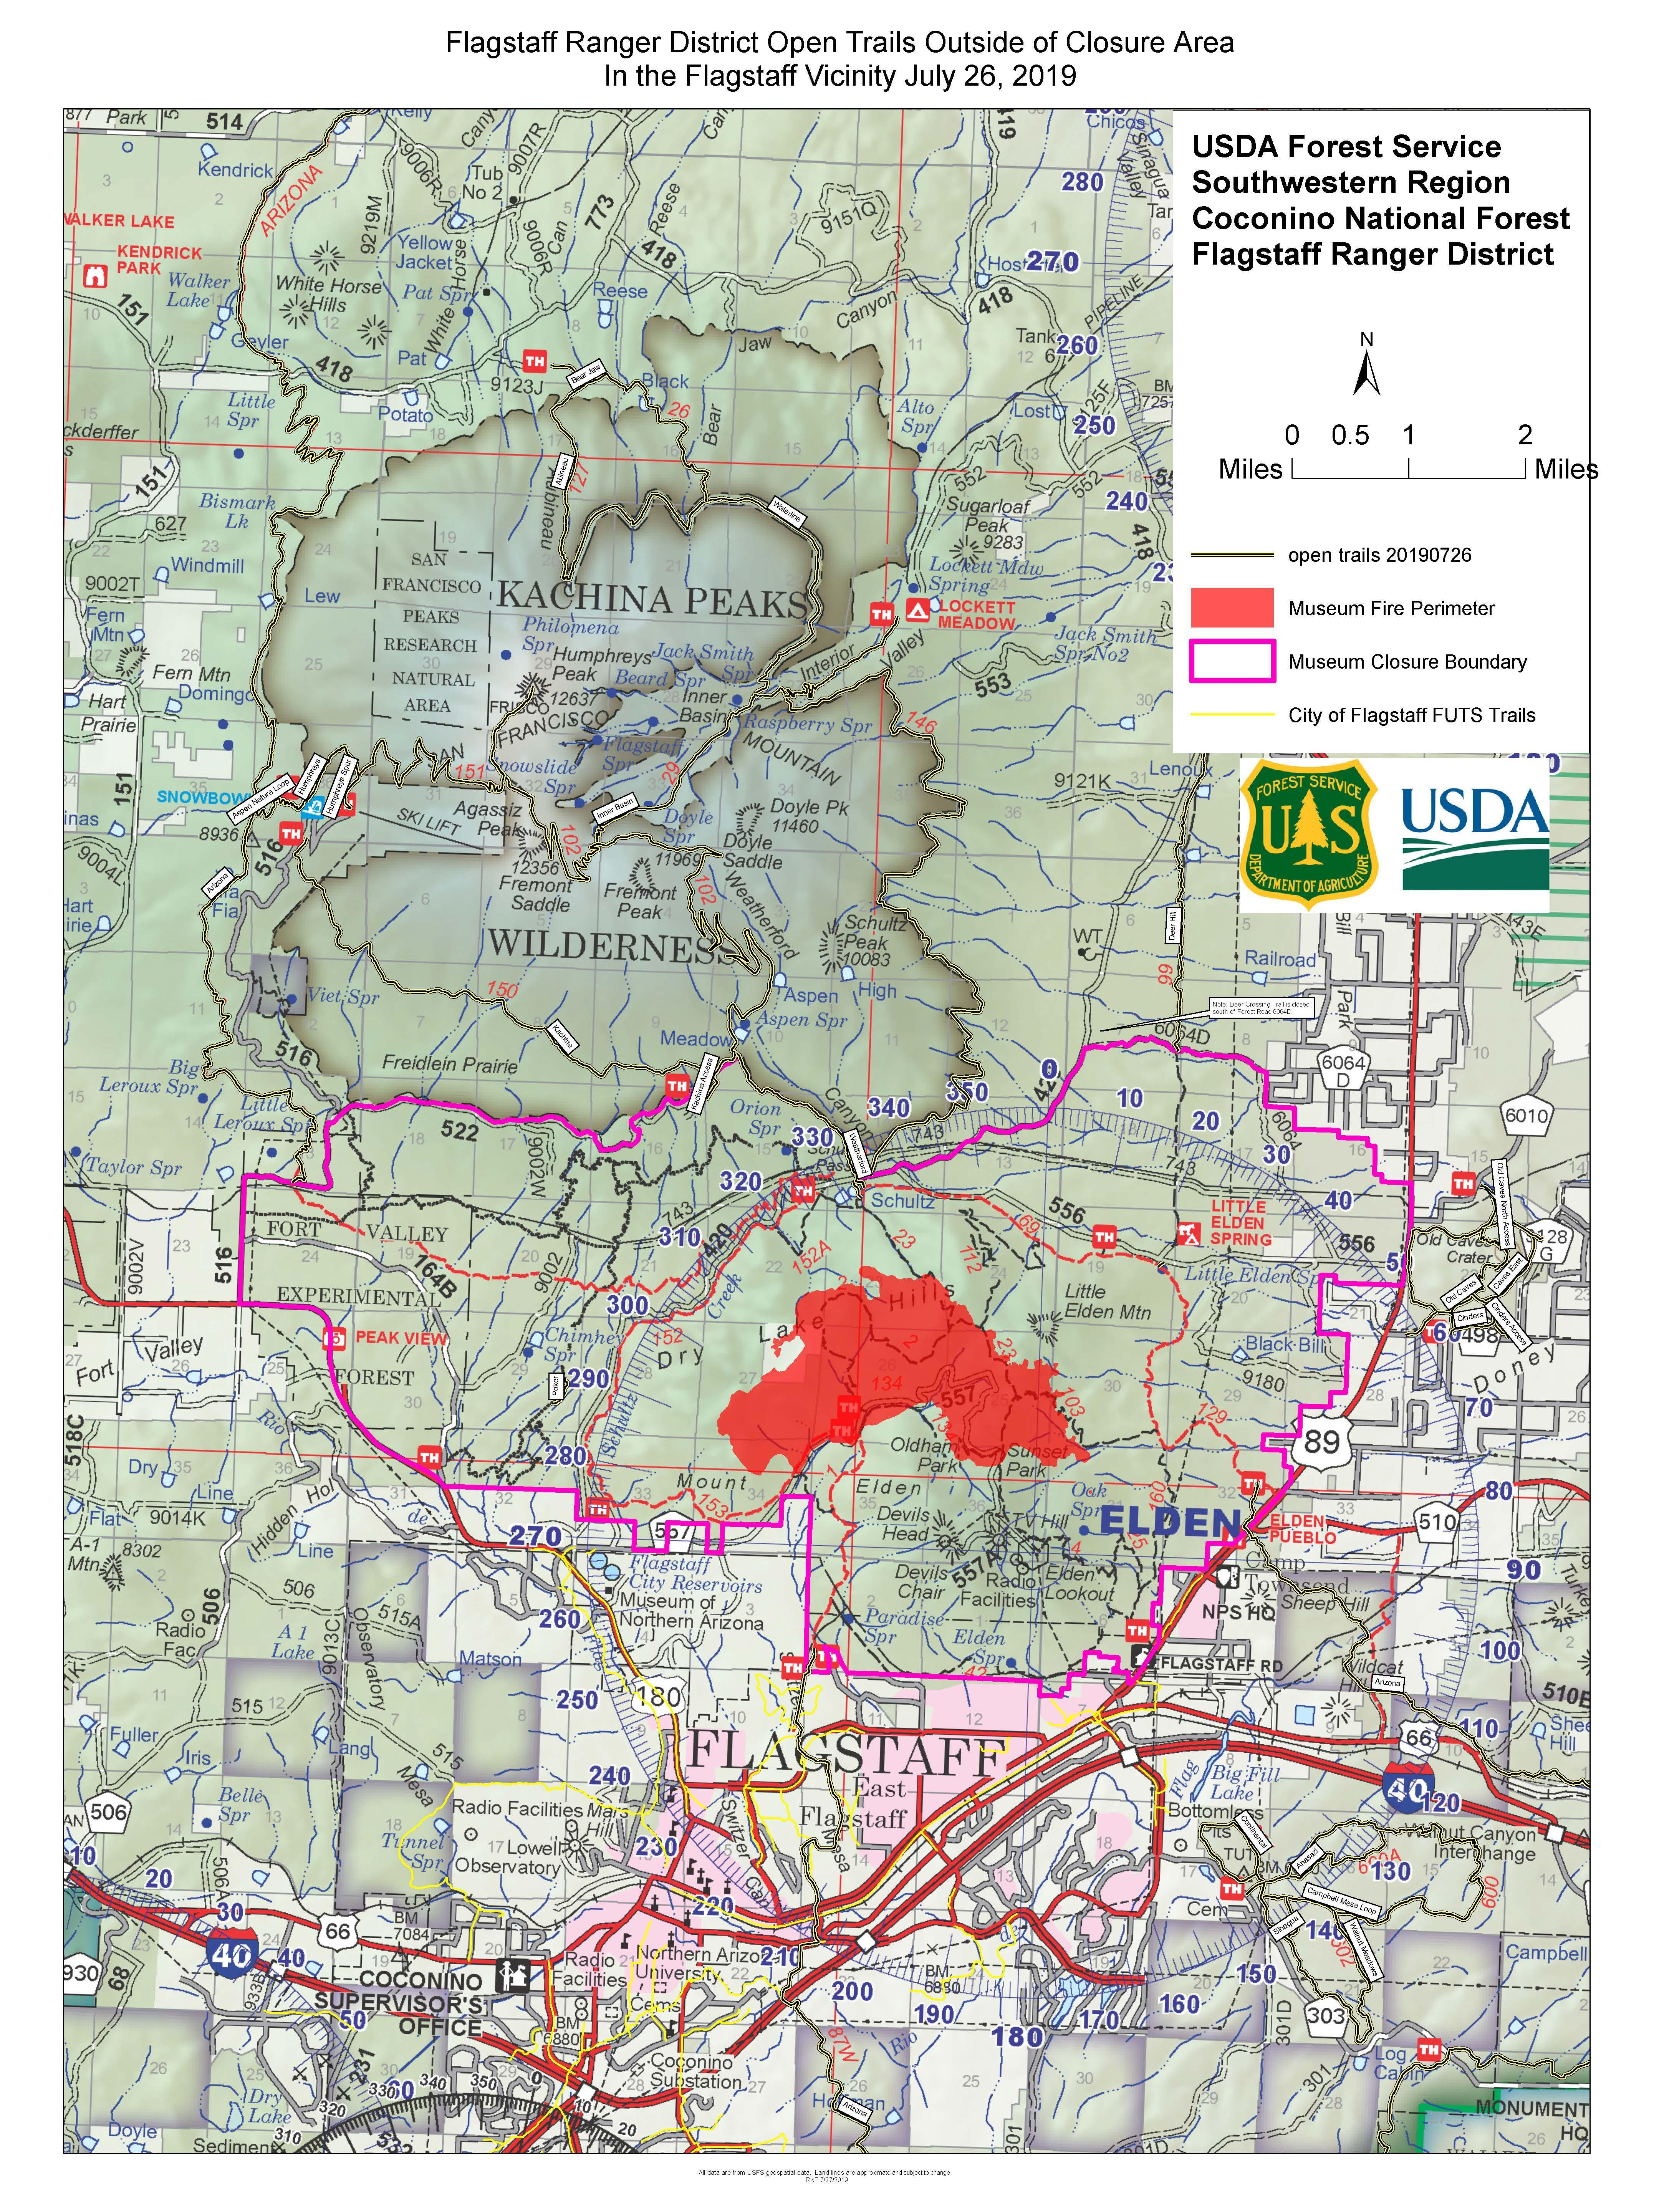 Open Trails Outside of Fire Closure Area on Flagstaff Ranger District